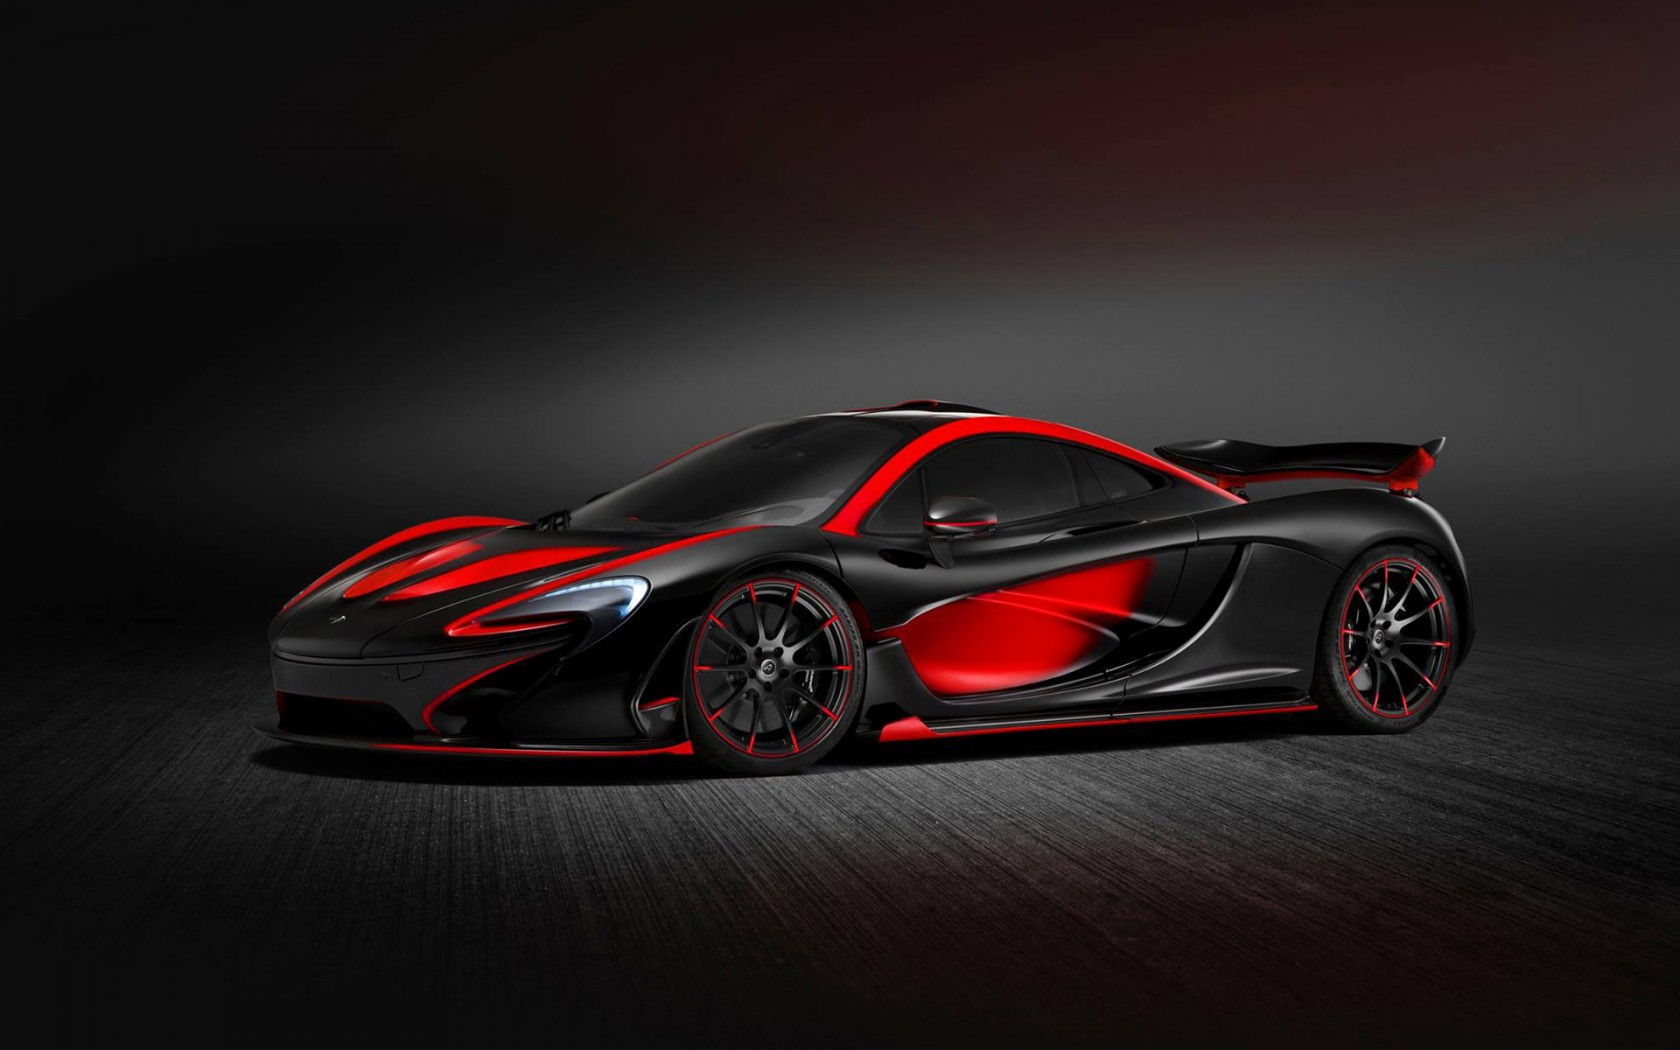 Mclaren P1 Gtr Logo >> 2015 Mclaren P1 Mclaren Special Operations 2 Wallpaper | HD Car Wallpapers | ID #5403